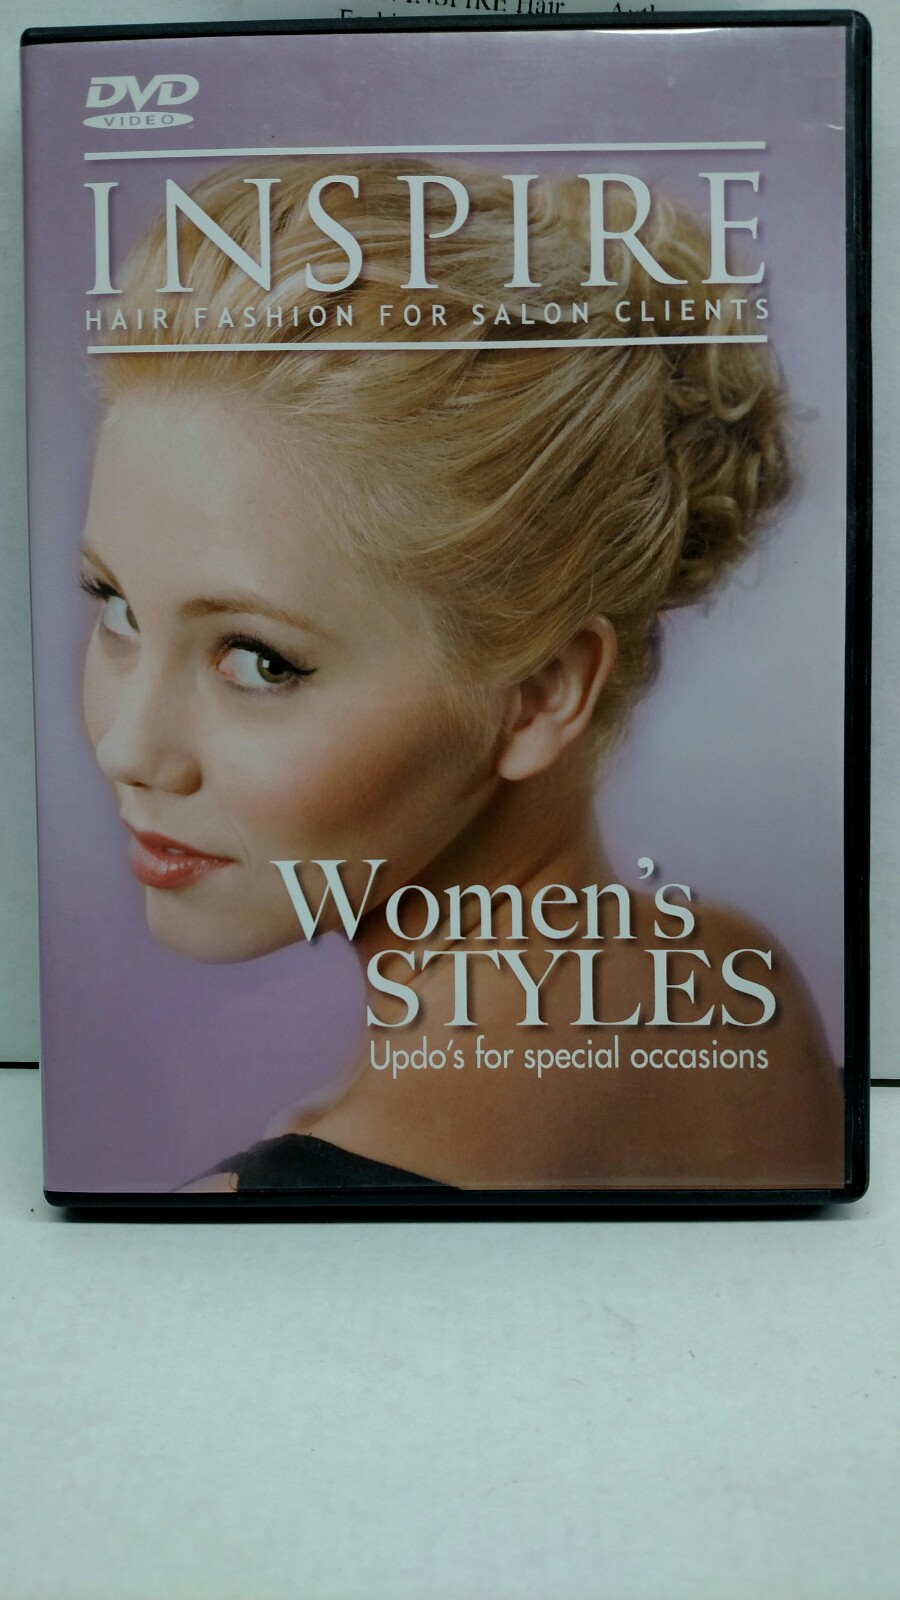 INSPIRE Hair Fashion DVD Women's Styles Updo's For Special Occasions BK-60573